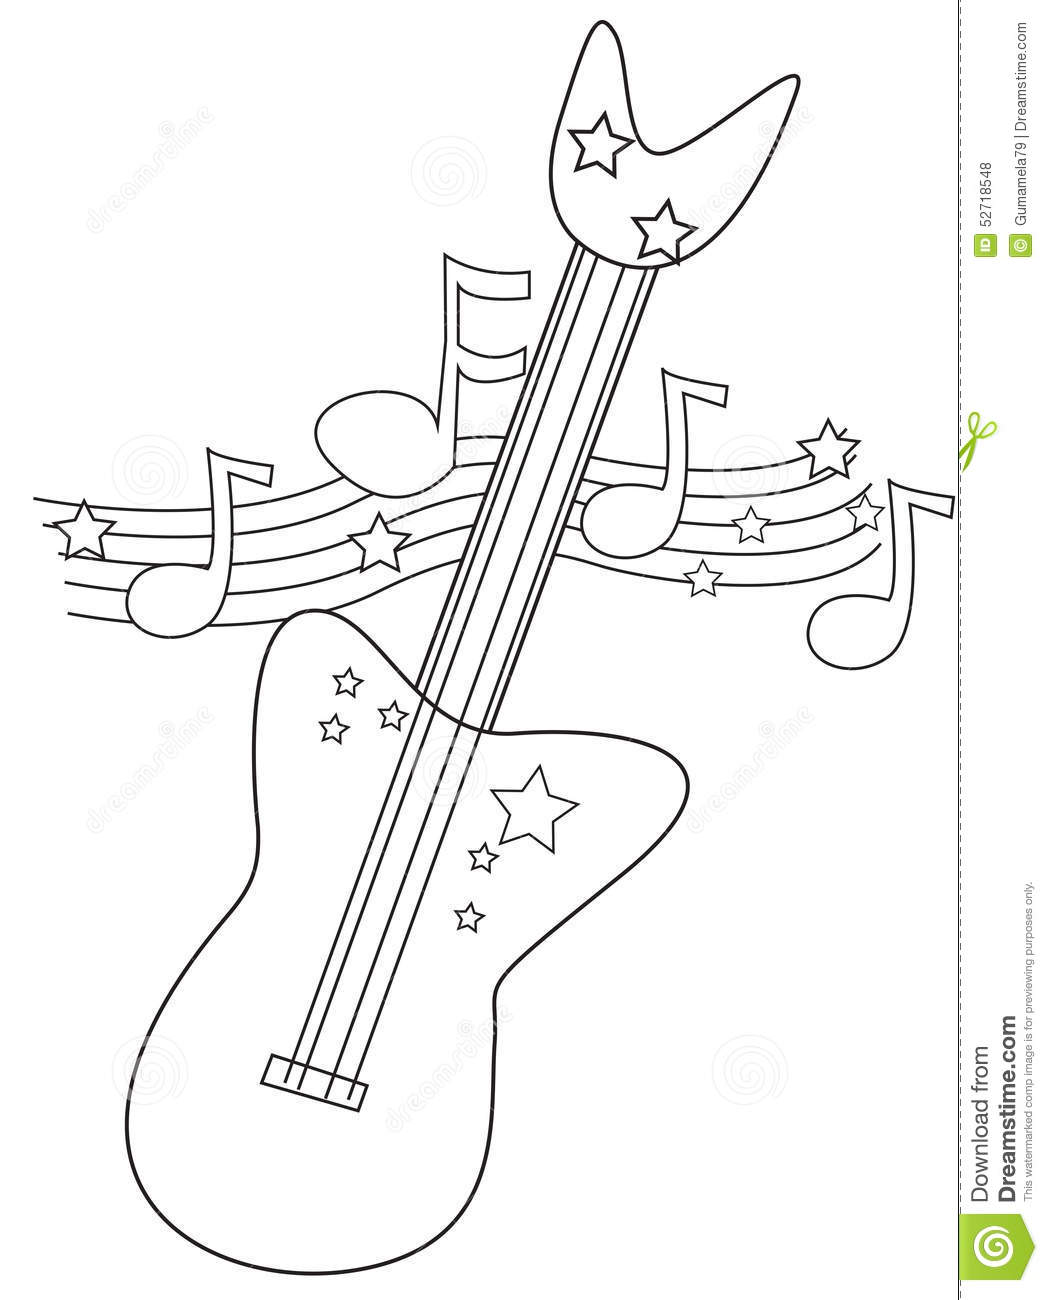 Electric guitar coloring page stock illustration image for Electric guitar coloring page